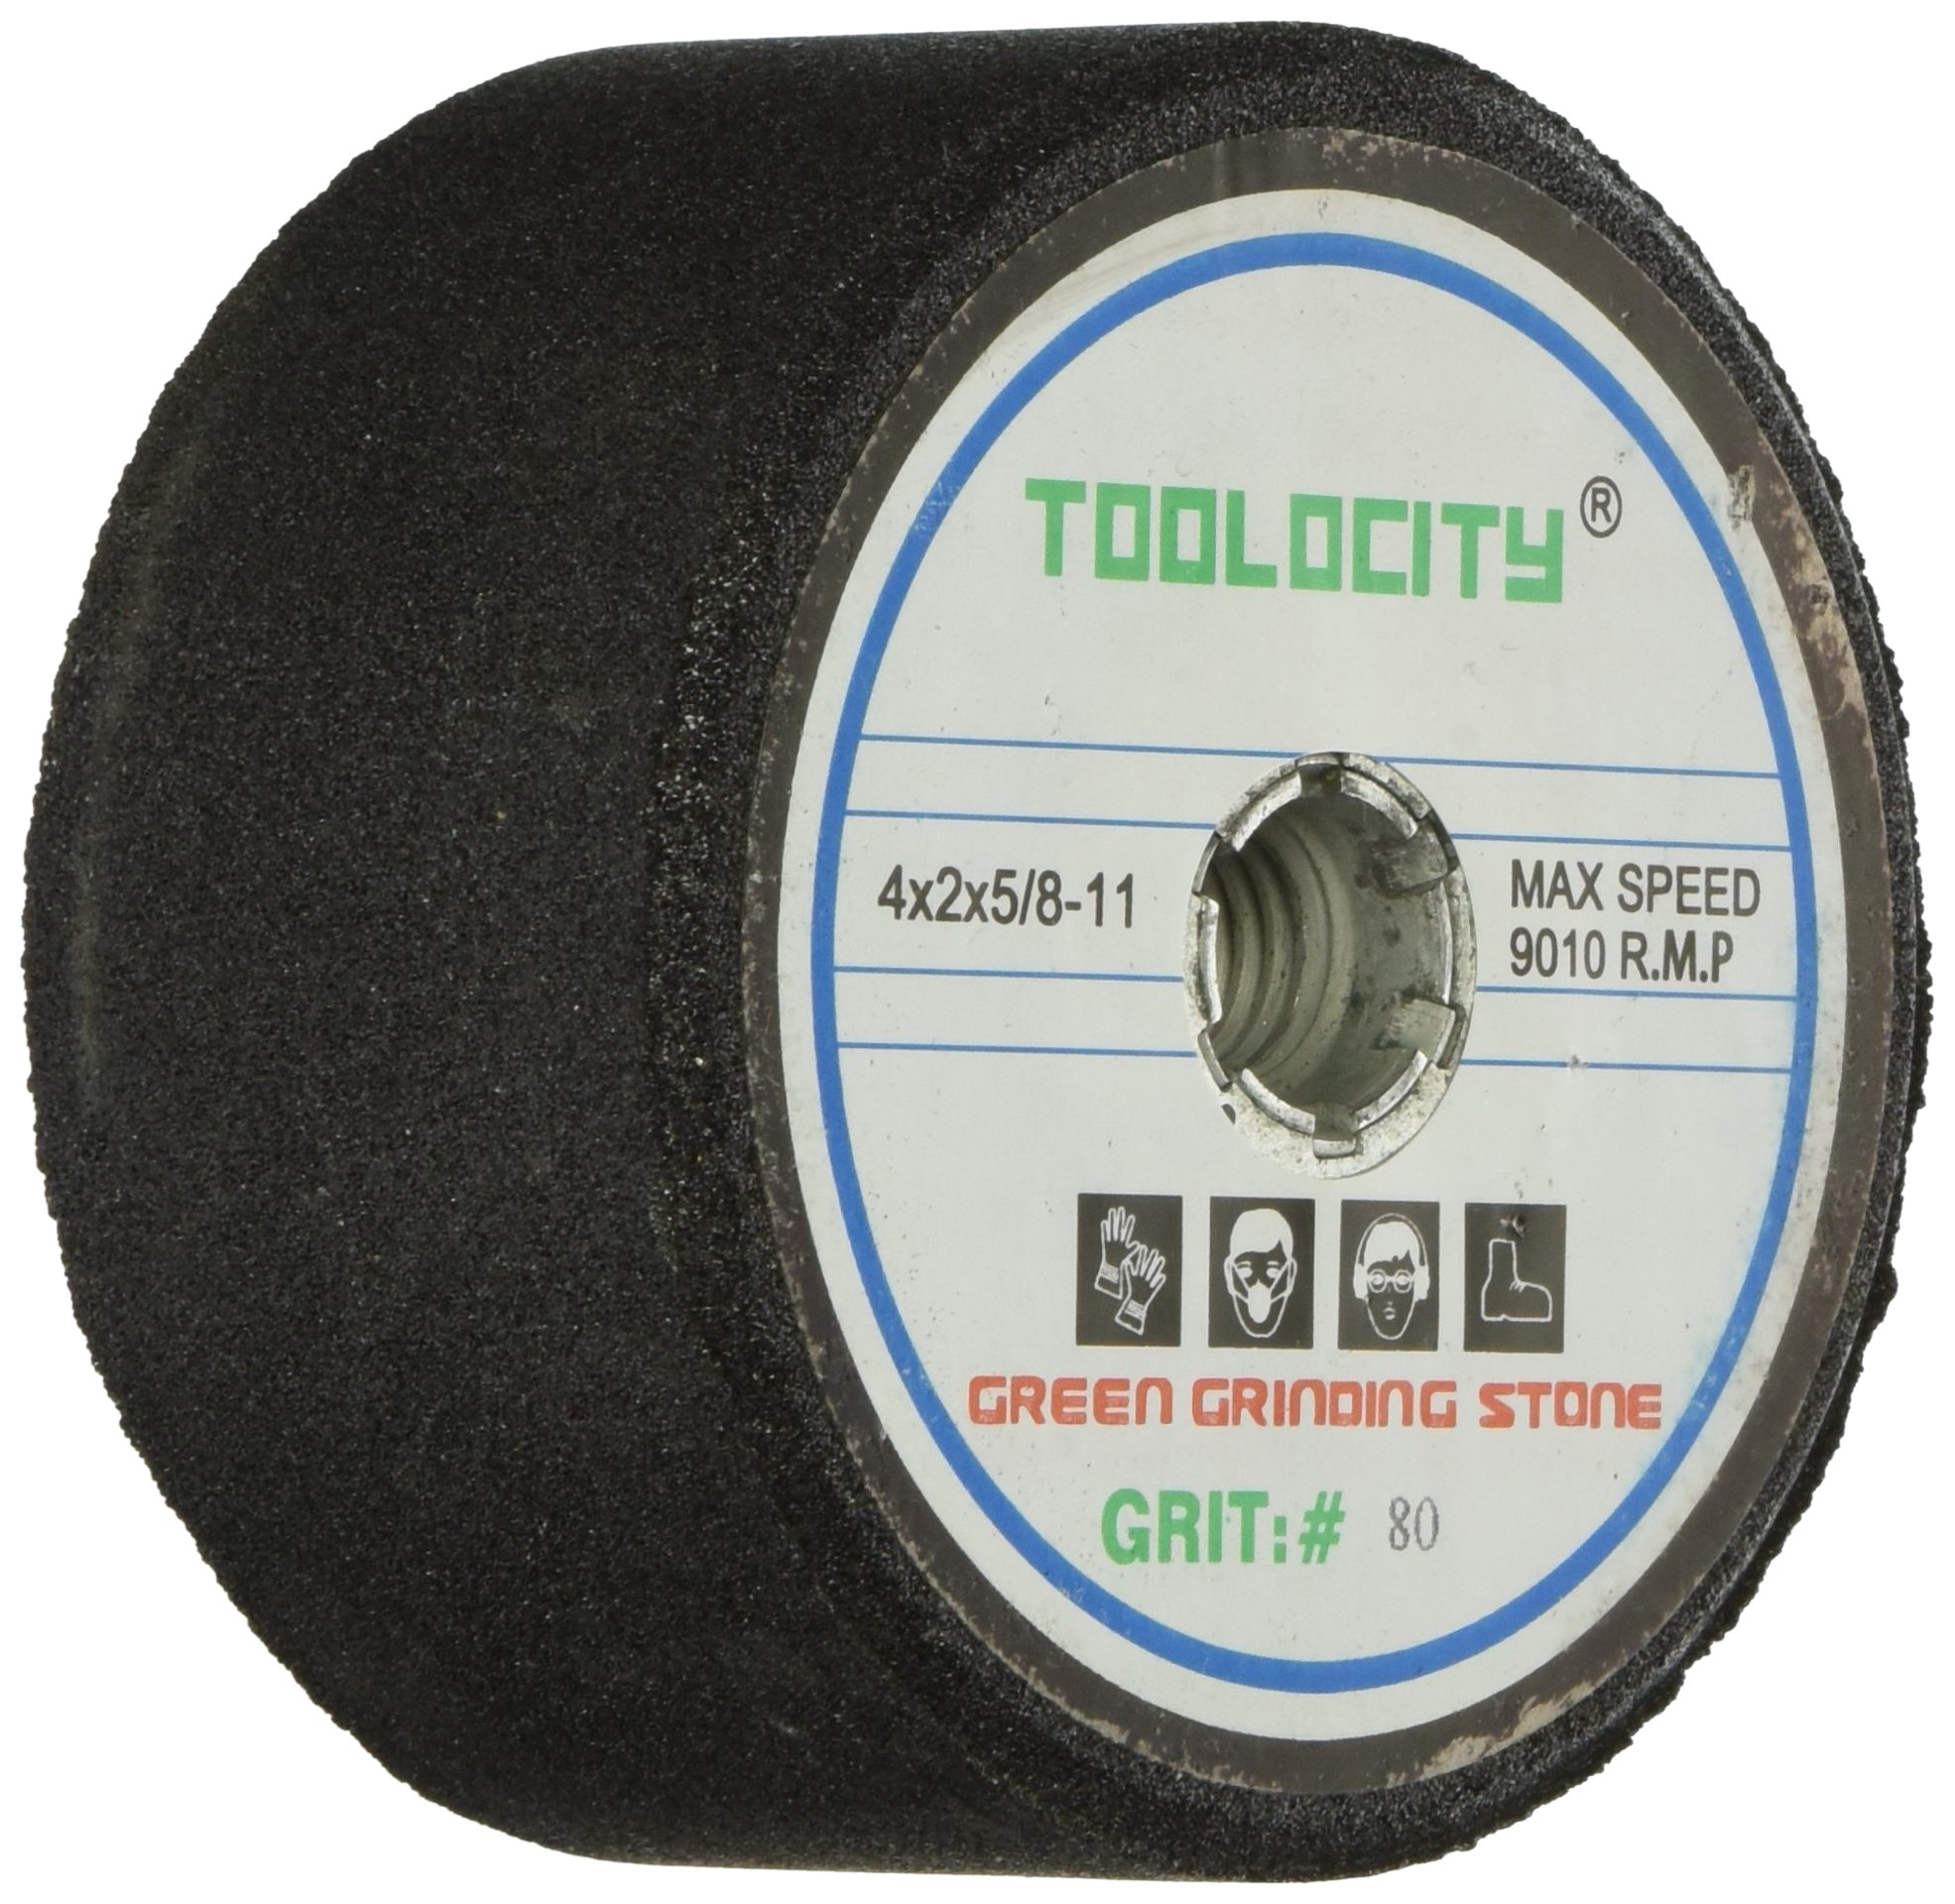 Toolocity GSB0080G 4-Inch Green Grinding Stone 80 Grit with 5/8-11 Thread by Toolocity